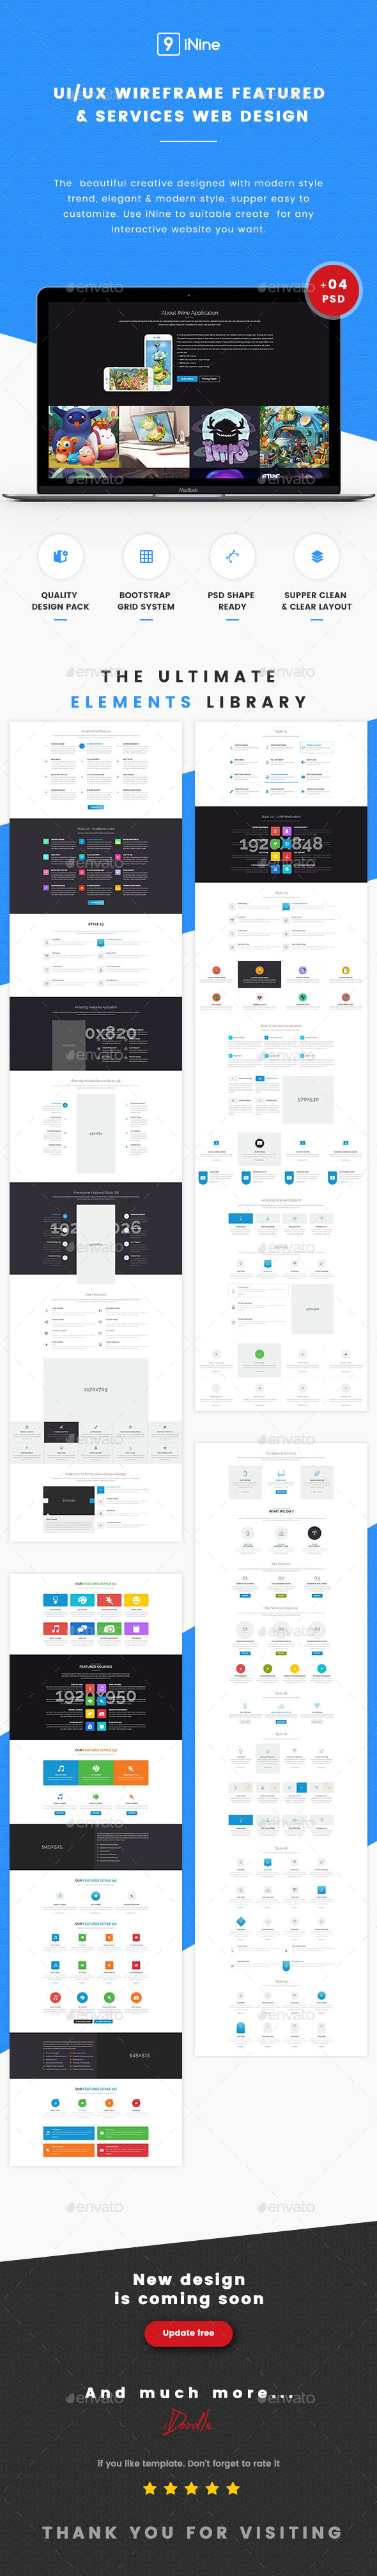 UI Kits Wireframe Featured & Services - 04 PSD (User Interfaces)